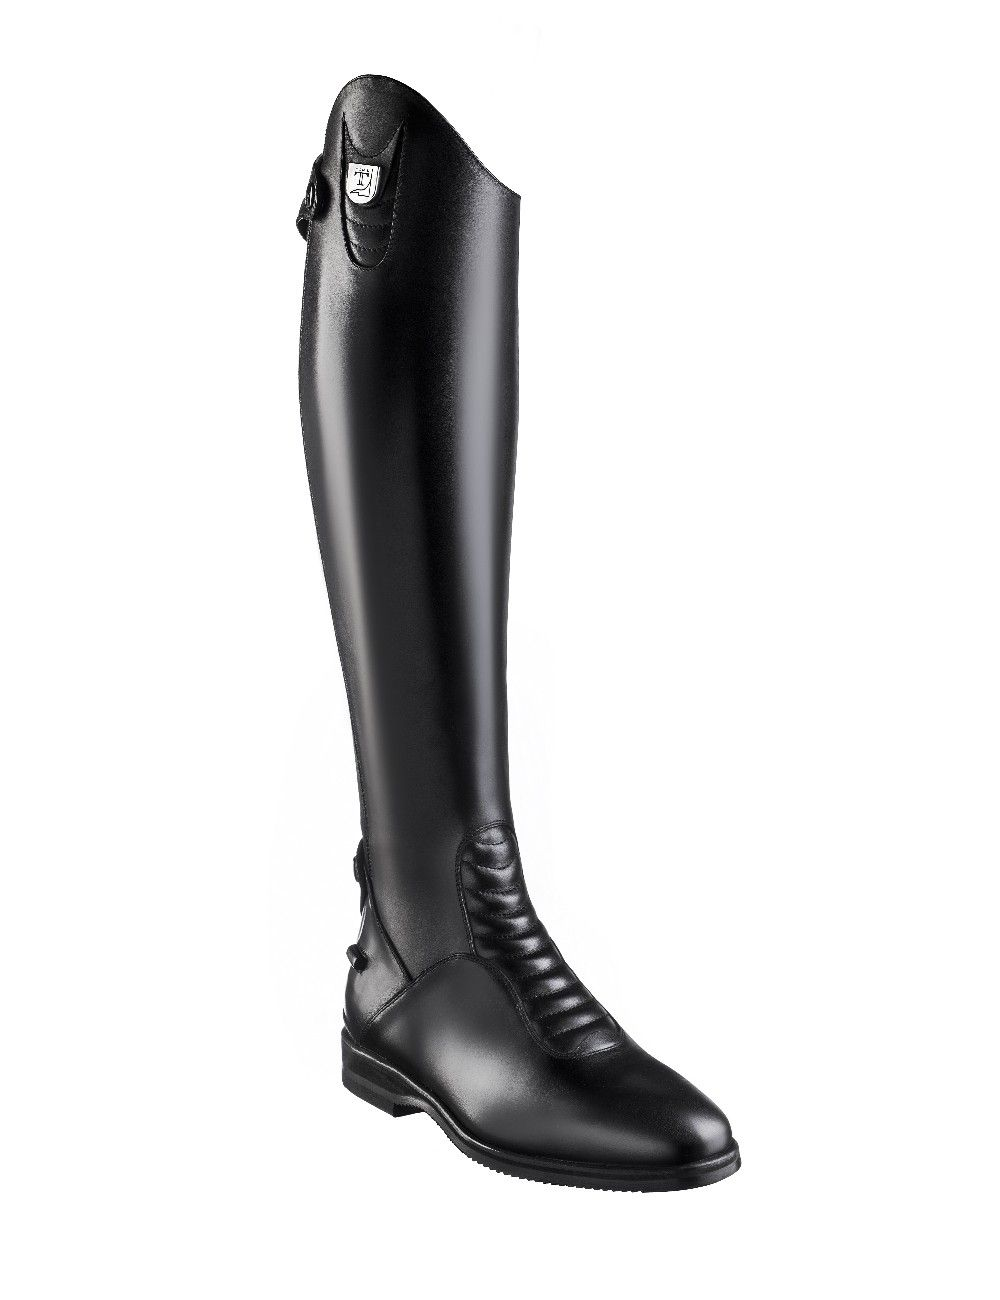 Tucci riding boots Harley - 1